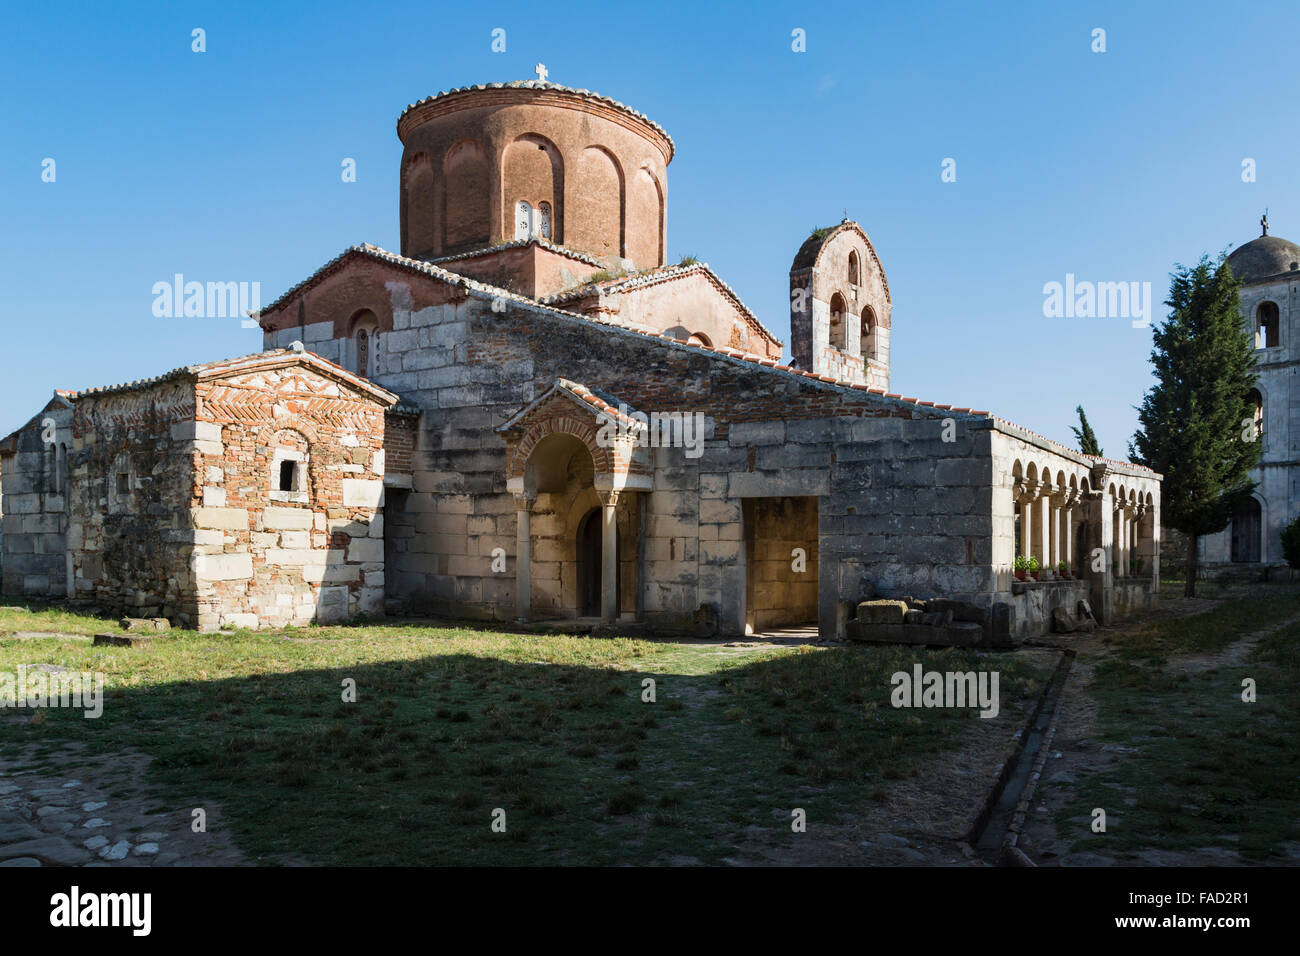 Apollonia, or Apoloni, Fier Region, Albania. Thirteenth century monastery and Church of St Mary or Shen Meri. - Stock Image